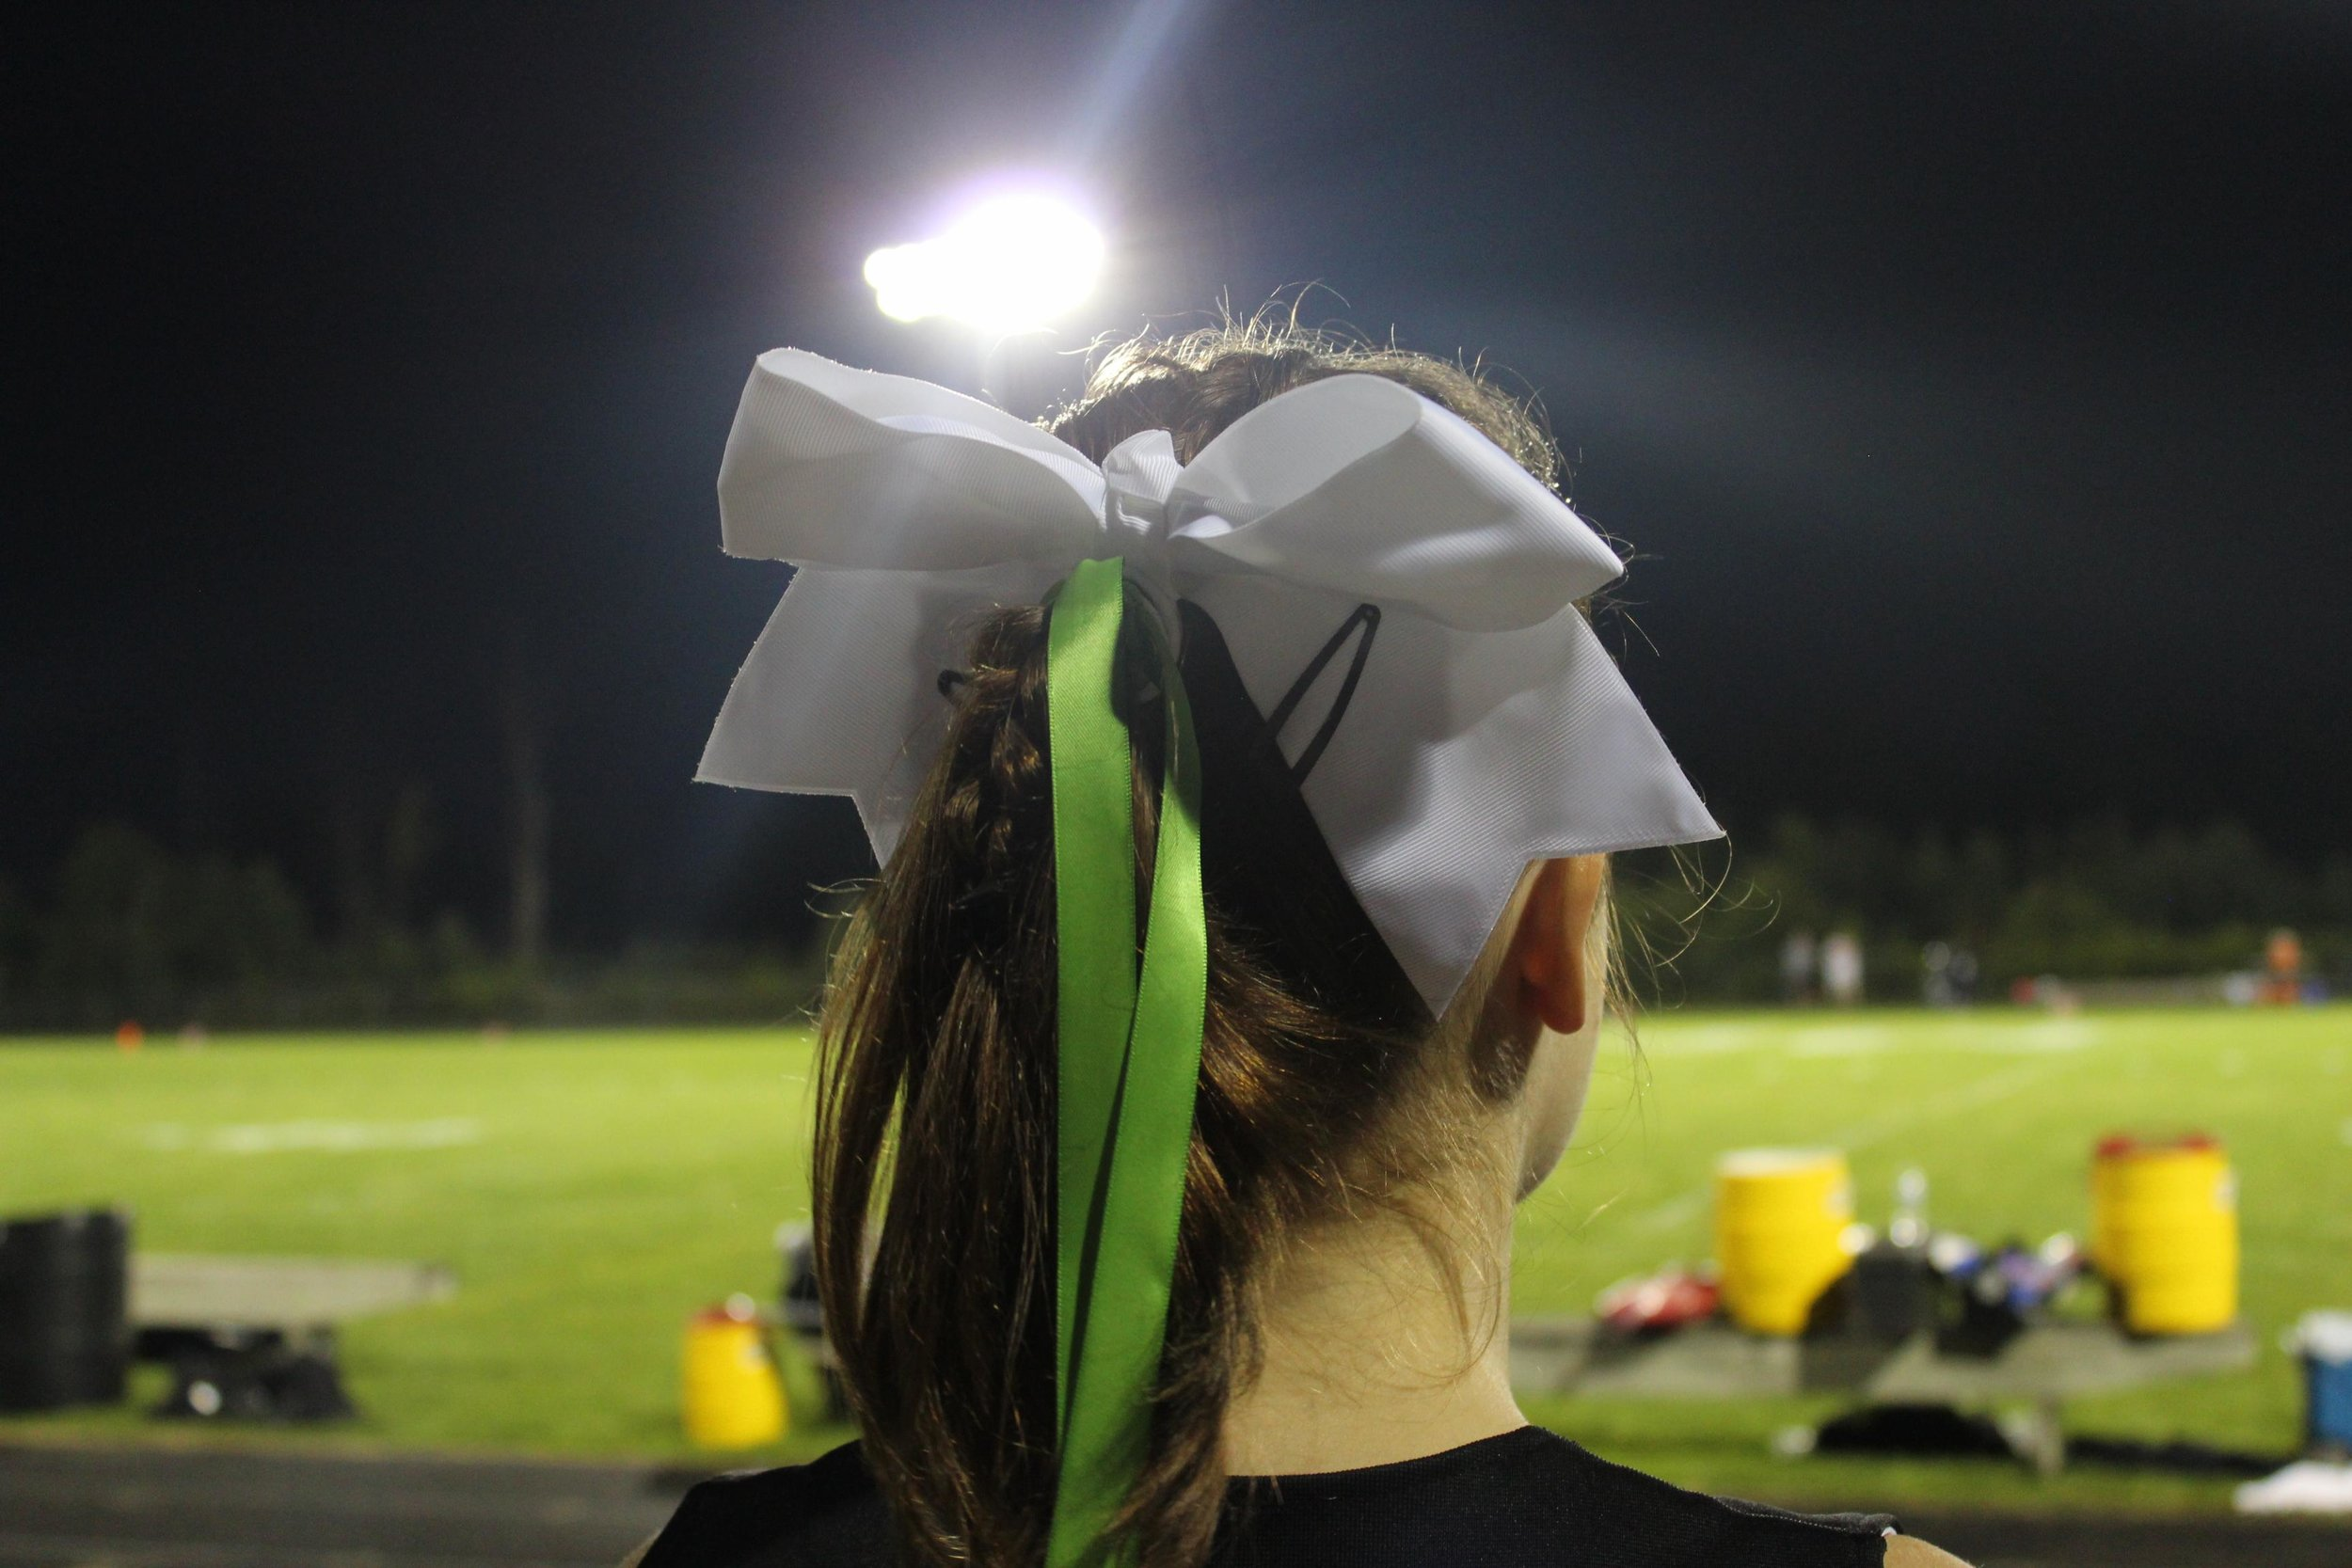 The Cheer Dance Team members are wearing green ribbons for every game this year, in support of Tommy and the Donate Life America Blue & Green cause.